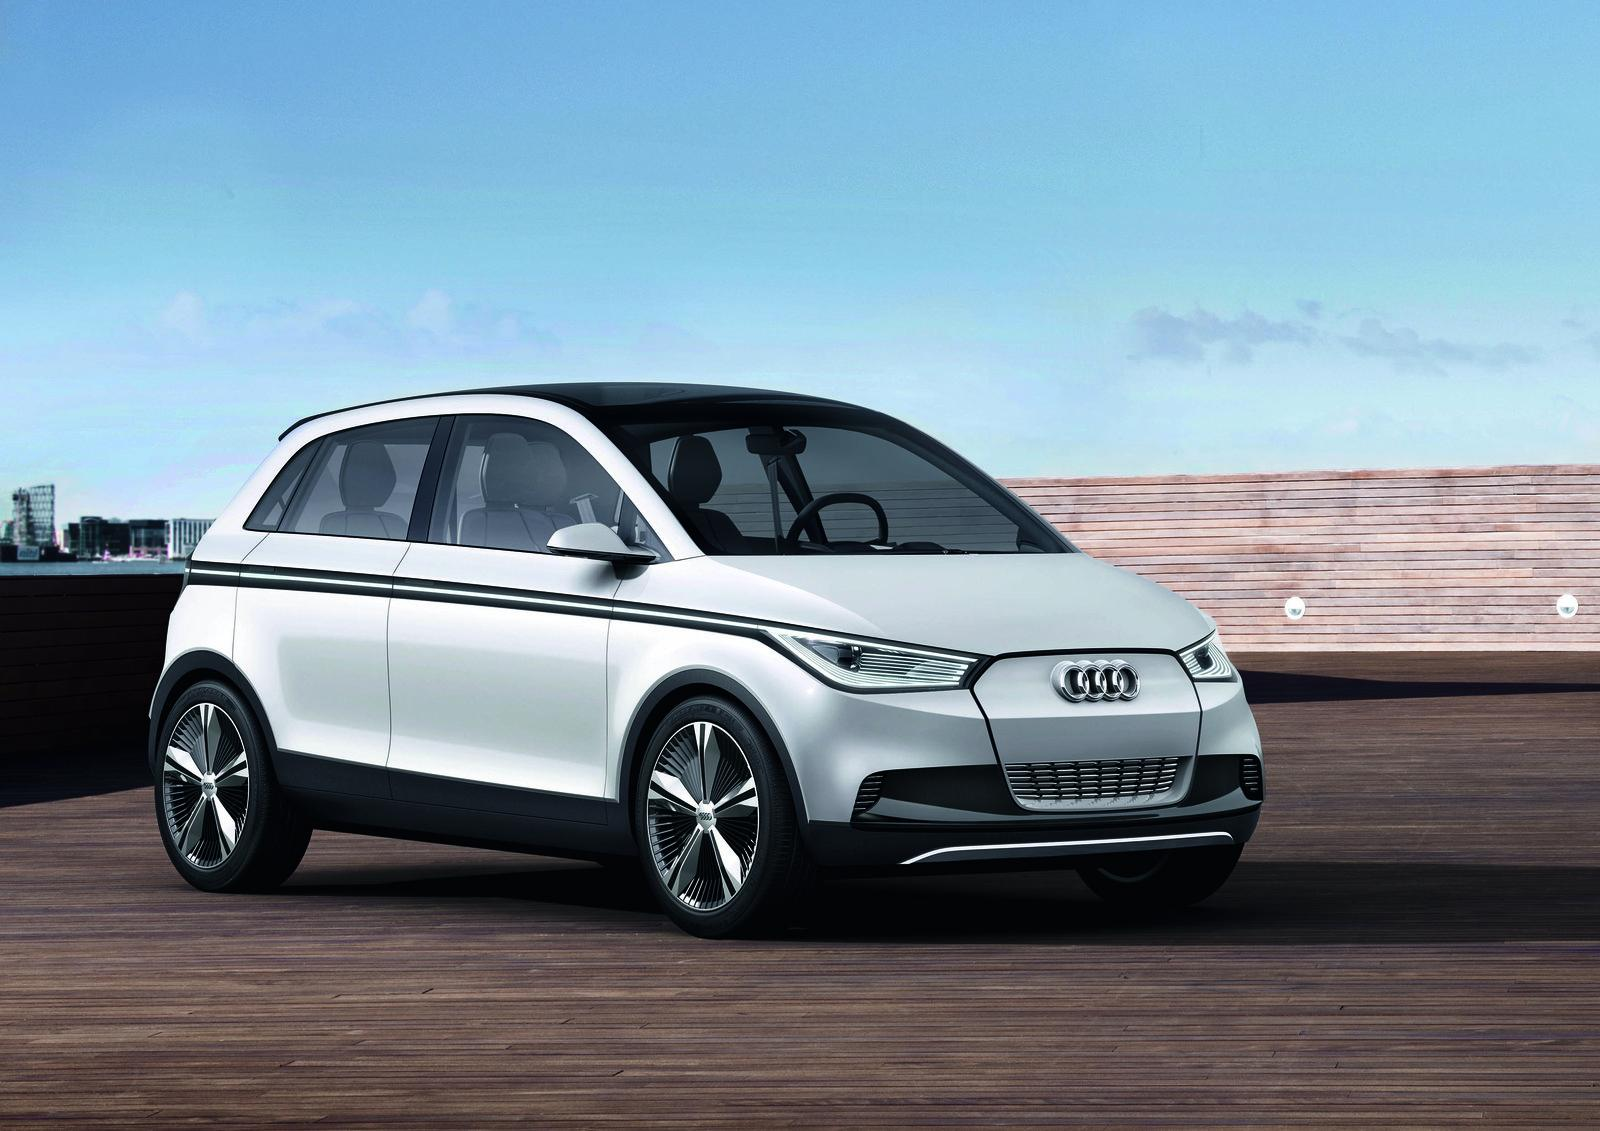 2015 Audi A2 2015 Audi A2 previous plans slashed and thus building its hopes on a new plan